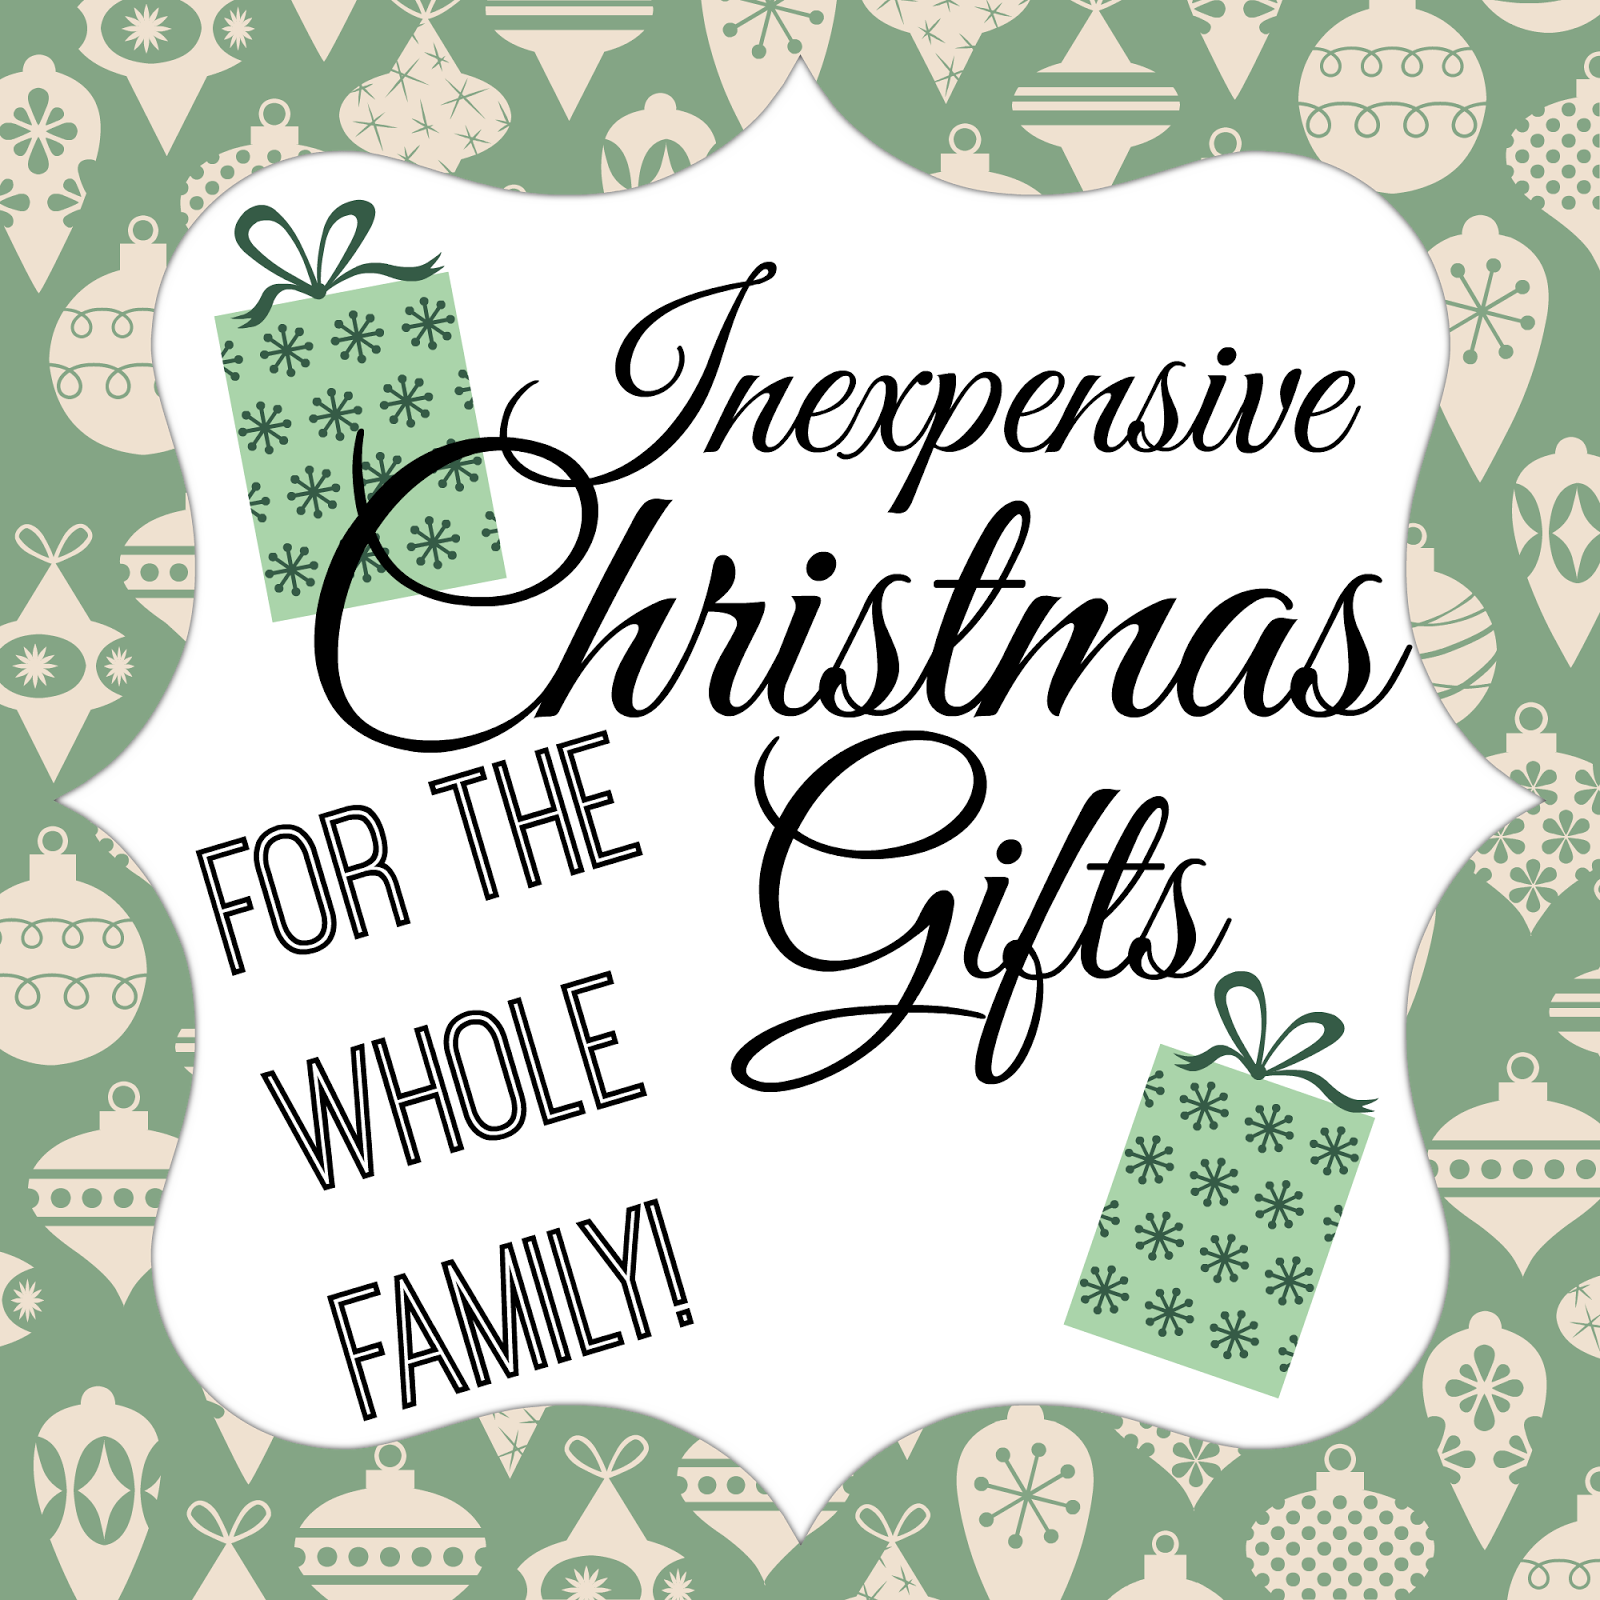 inexpensive christmas gifts for the whole family